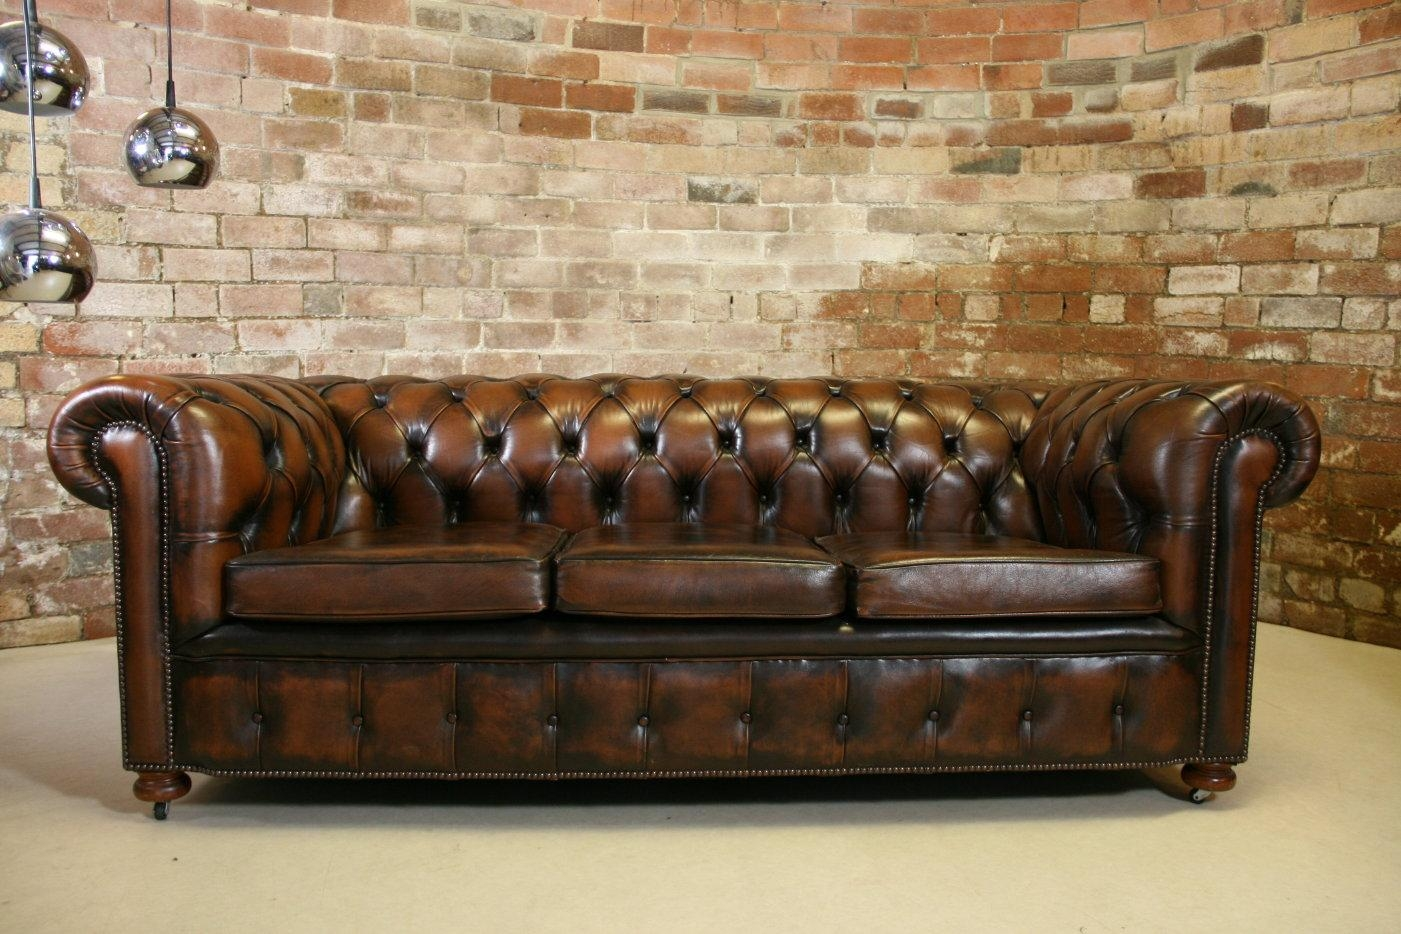 Sofas Center : Awesomeque Sofa Styles Photo Design Pictures Inside Vintage Sofa  Styles (Image 11